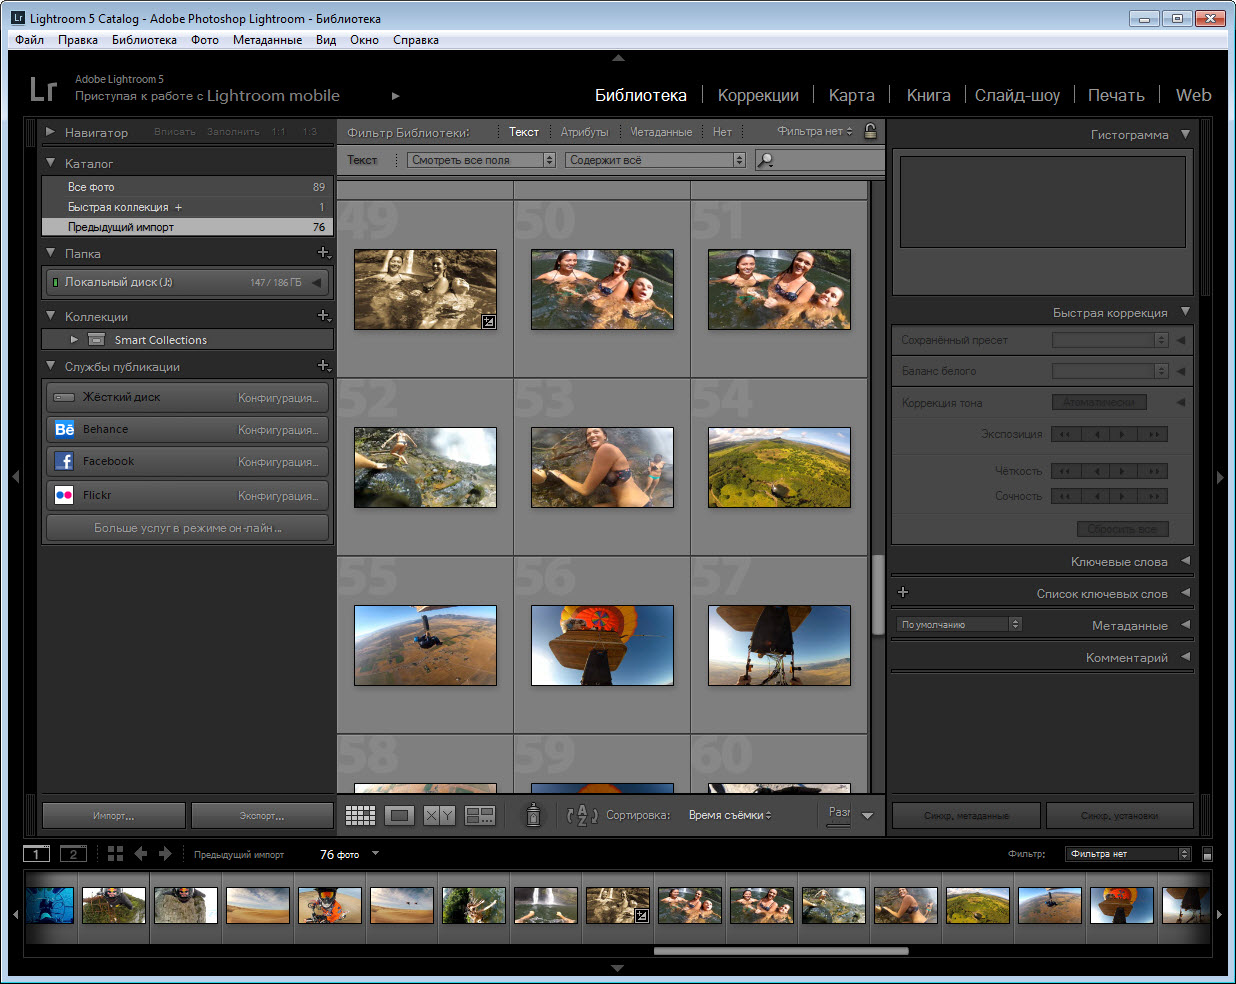 adobe photoshop lightroom скачать